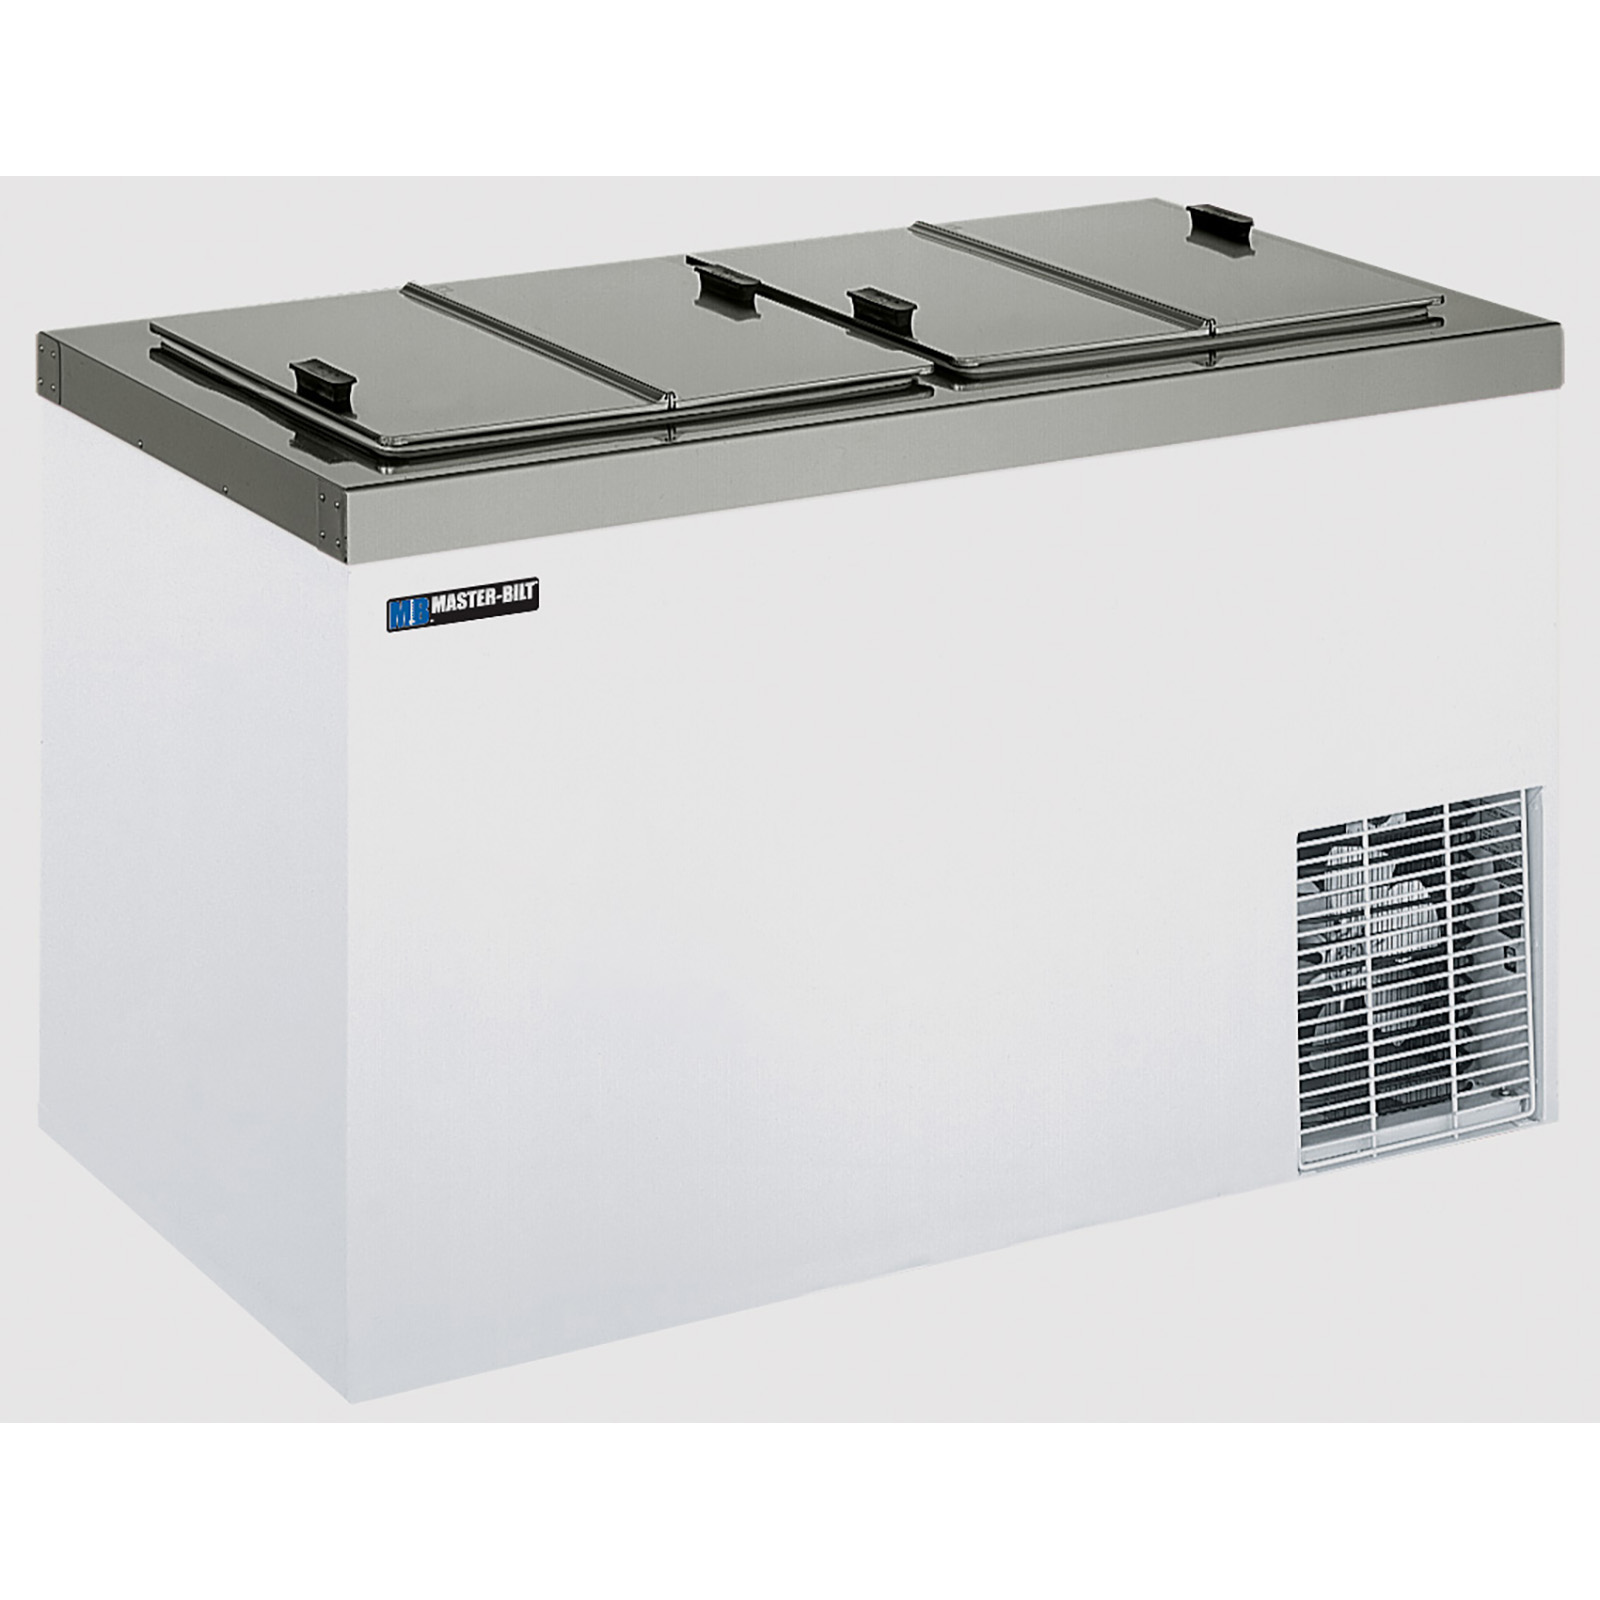 Master-Bilt Products DC-8D ice cream dipping cabinet